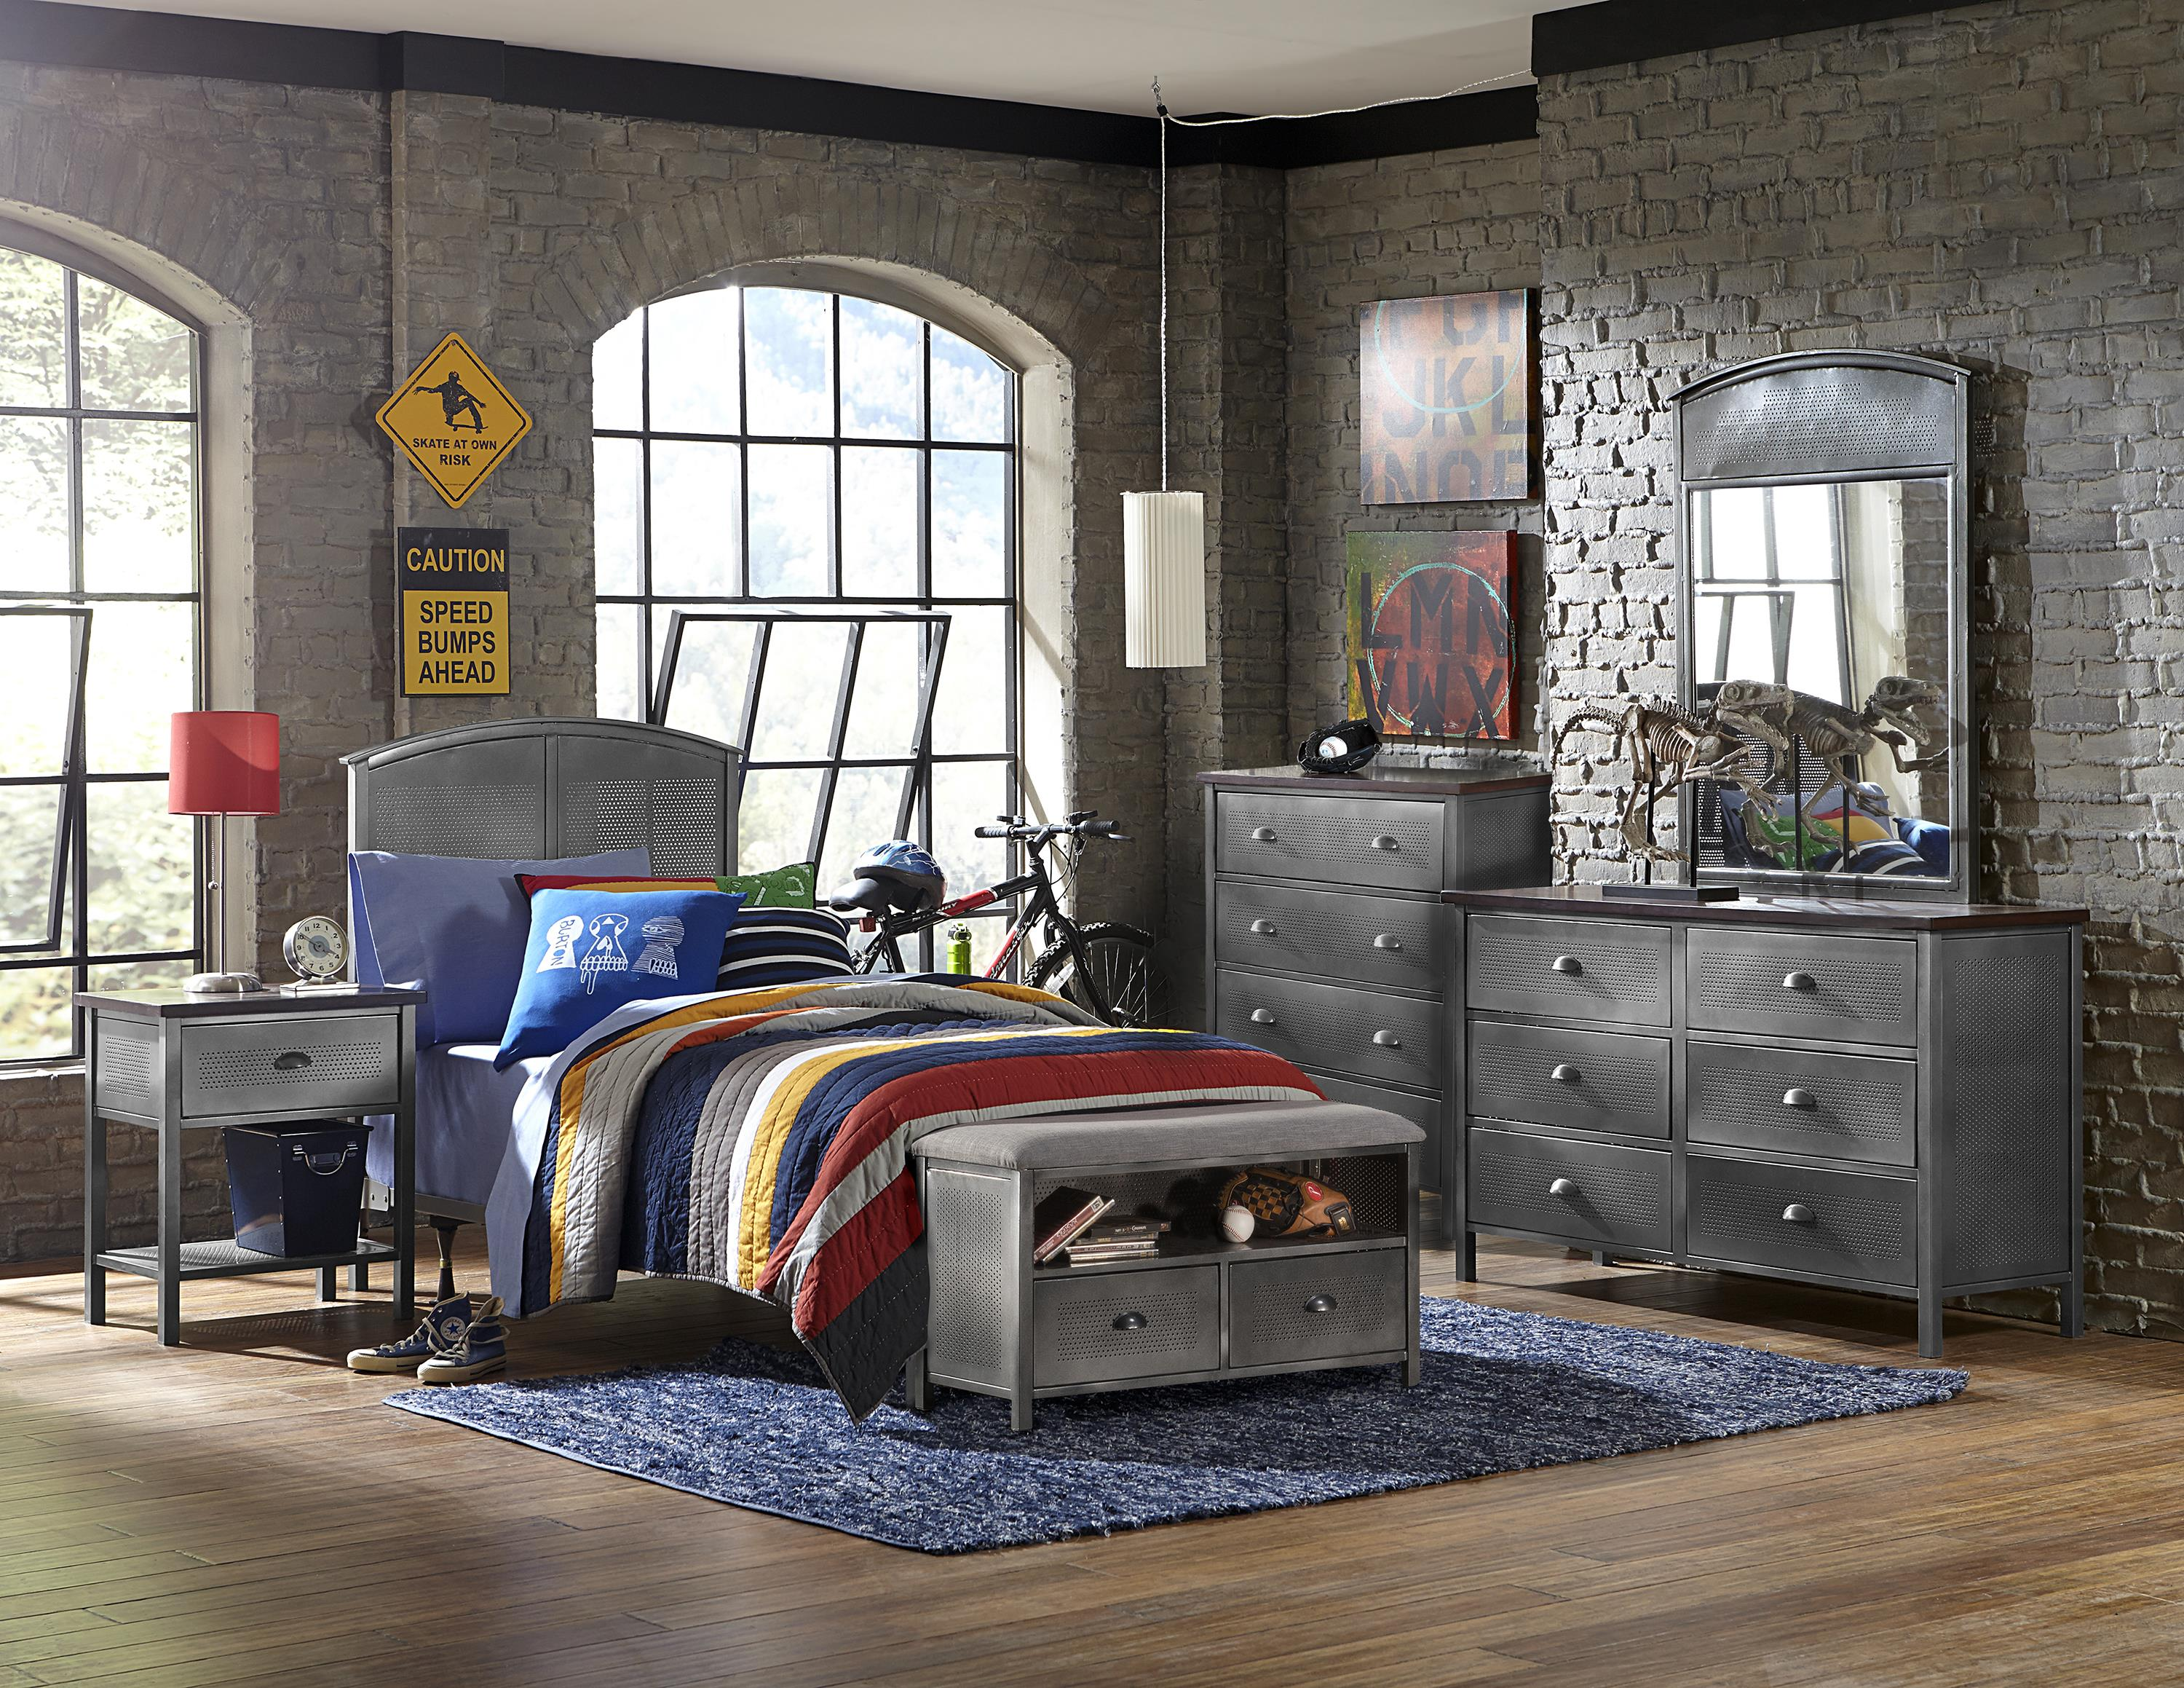 Hillsdale Urban Quarters Five Piece Panel Twin Bed Set with Bench - Item Number: 1265BTRPB5